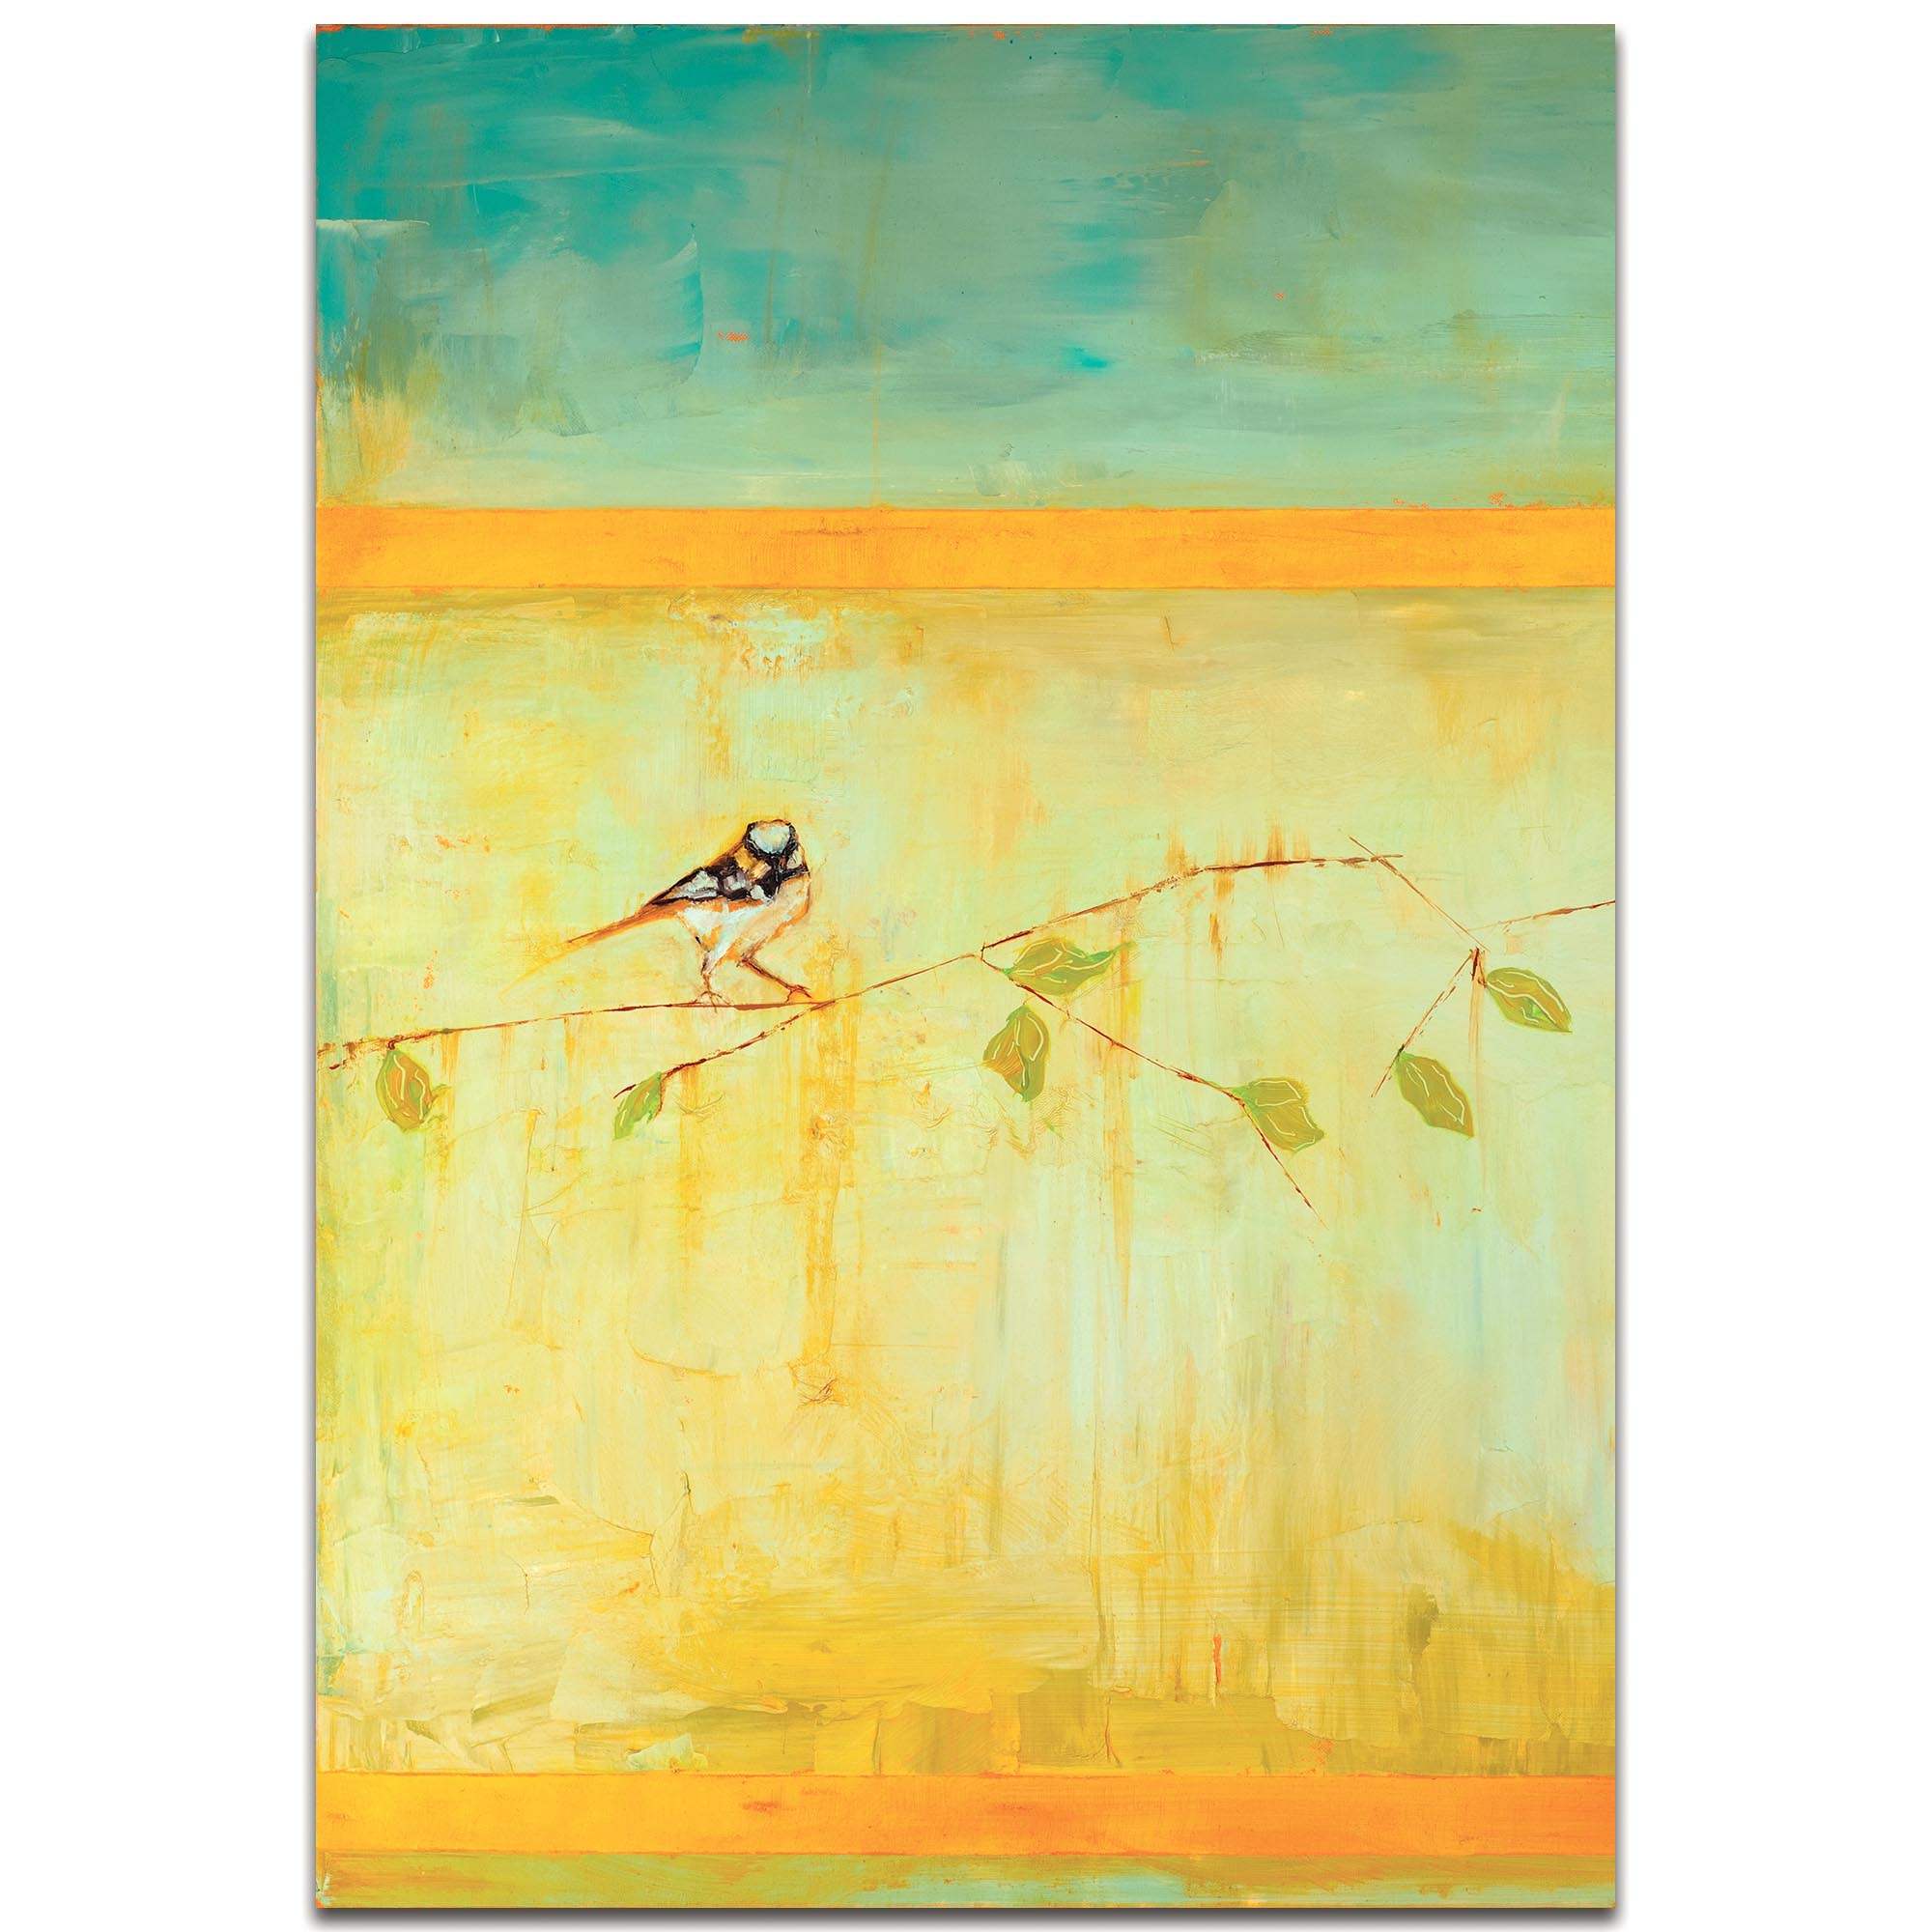 Contemporary Wall Art 'Bird with Horizontal Stripes v2' - Urban Birds Decor on Metal or Plexiglass